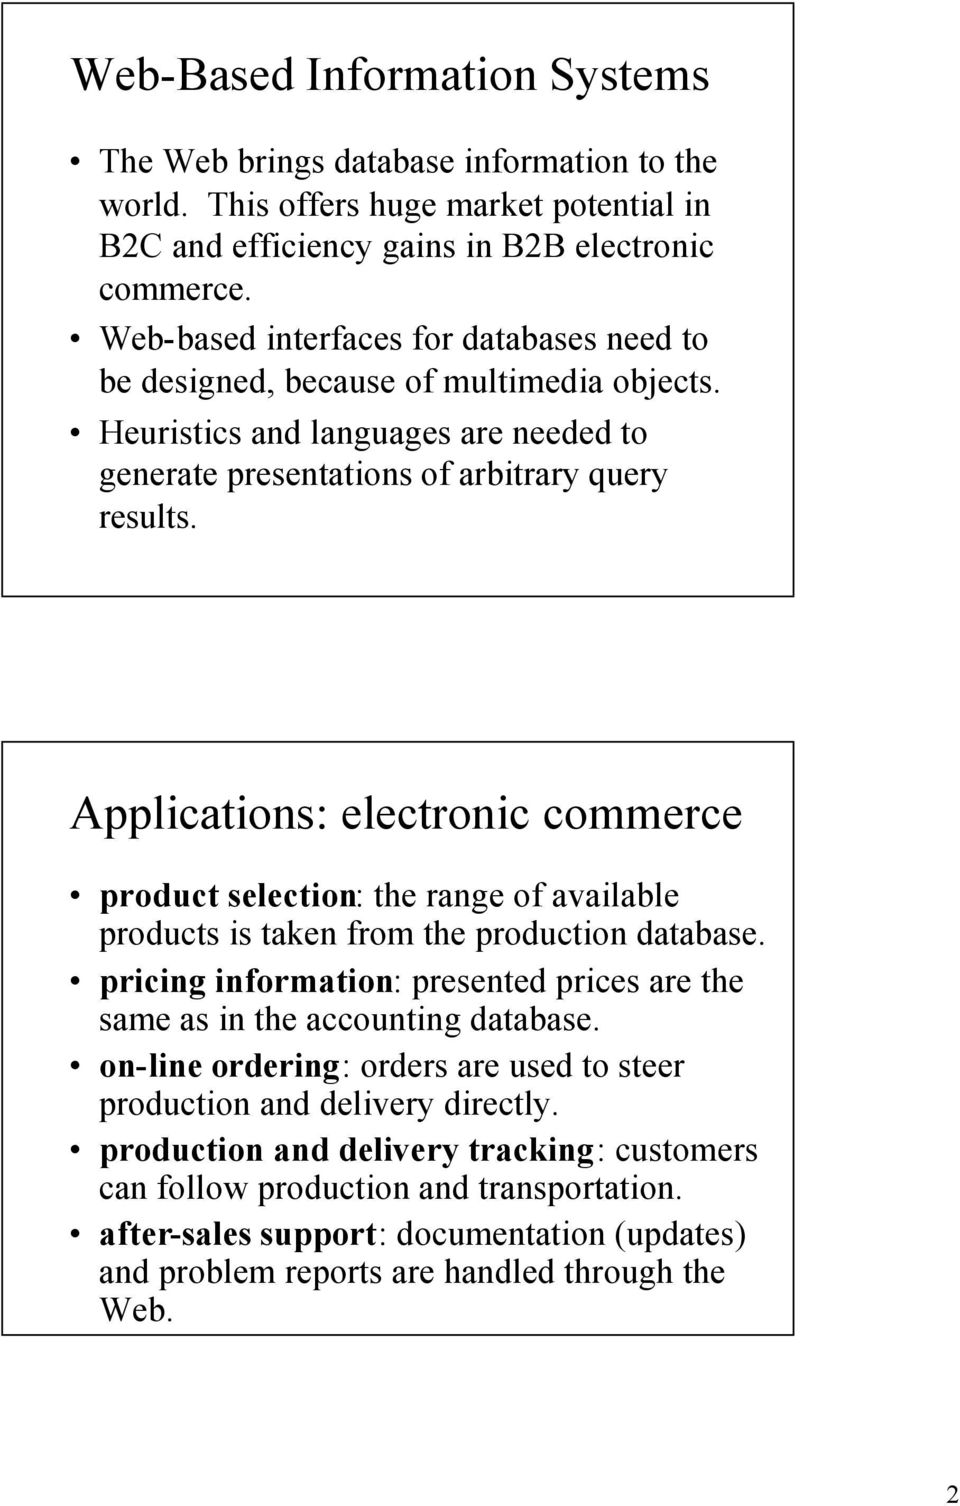 Applications: electronic commerce product selection: the range of available products is taken from the production database.